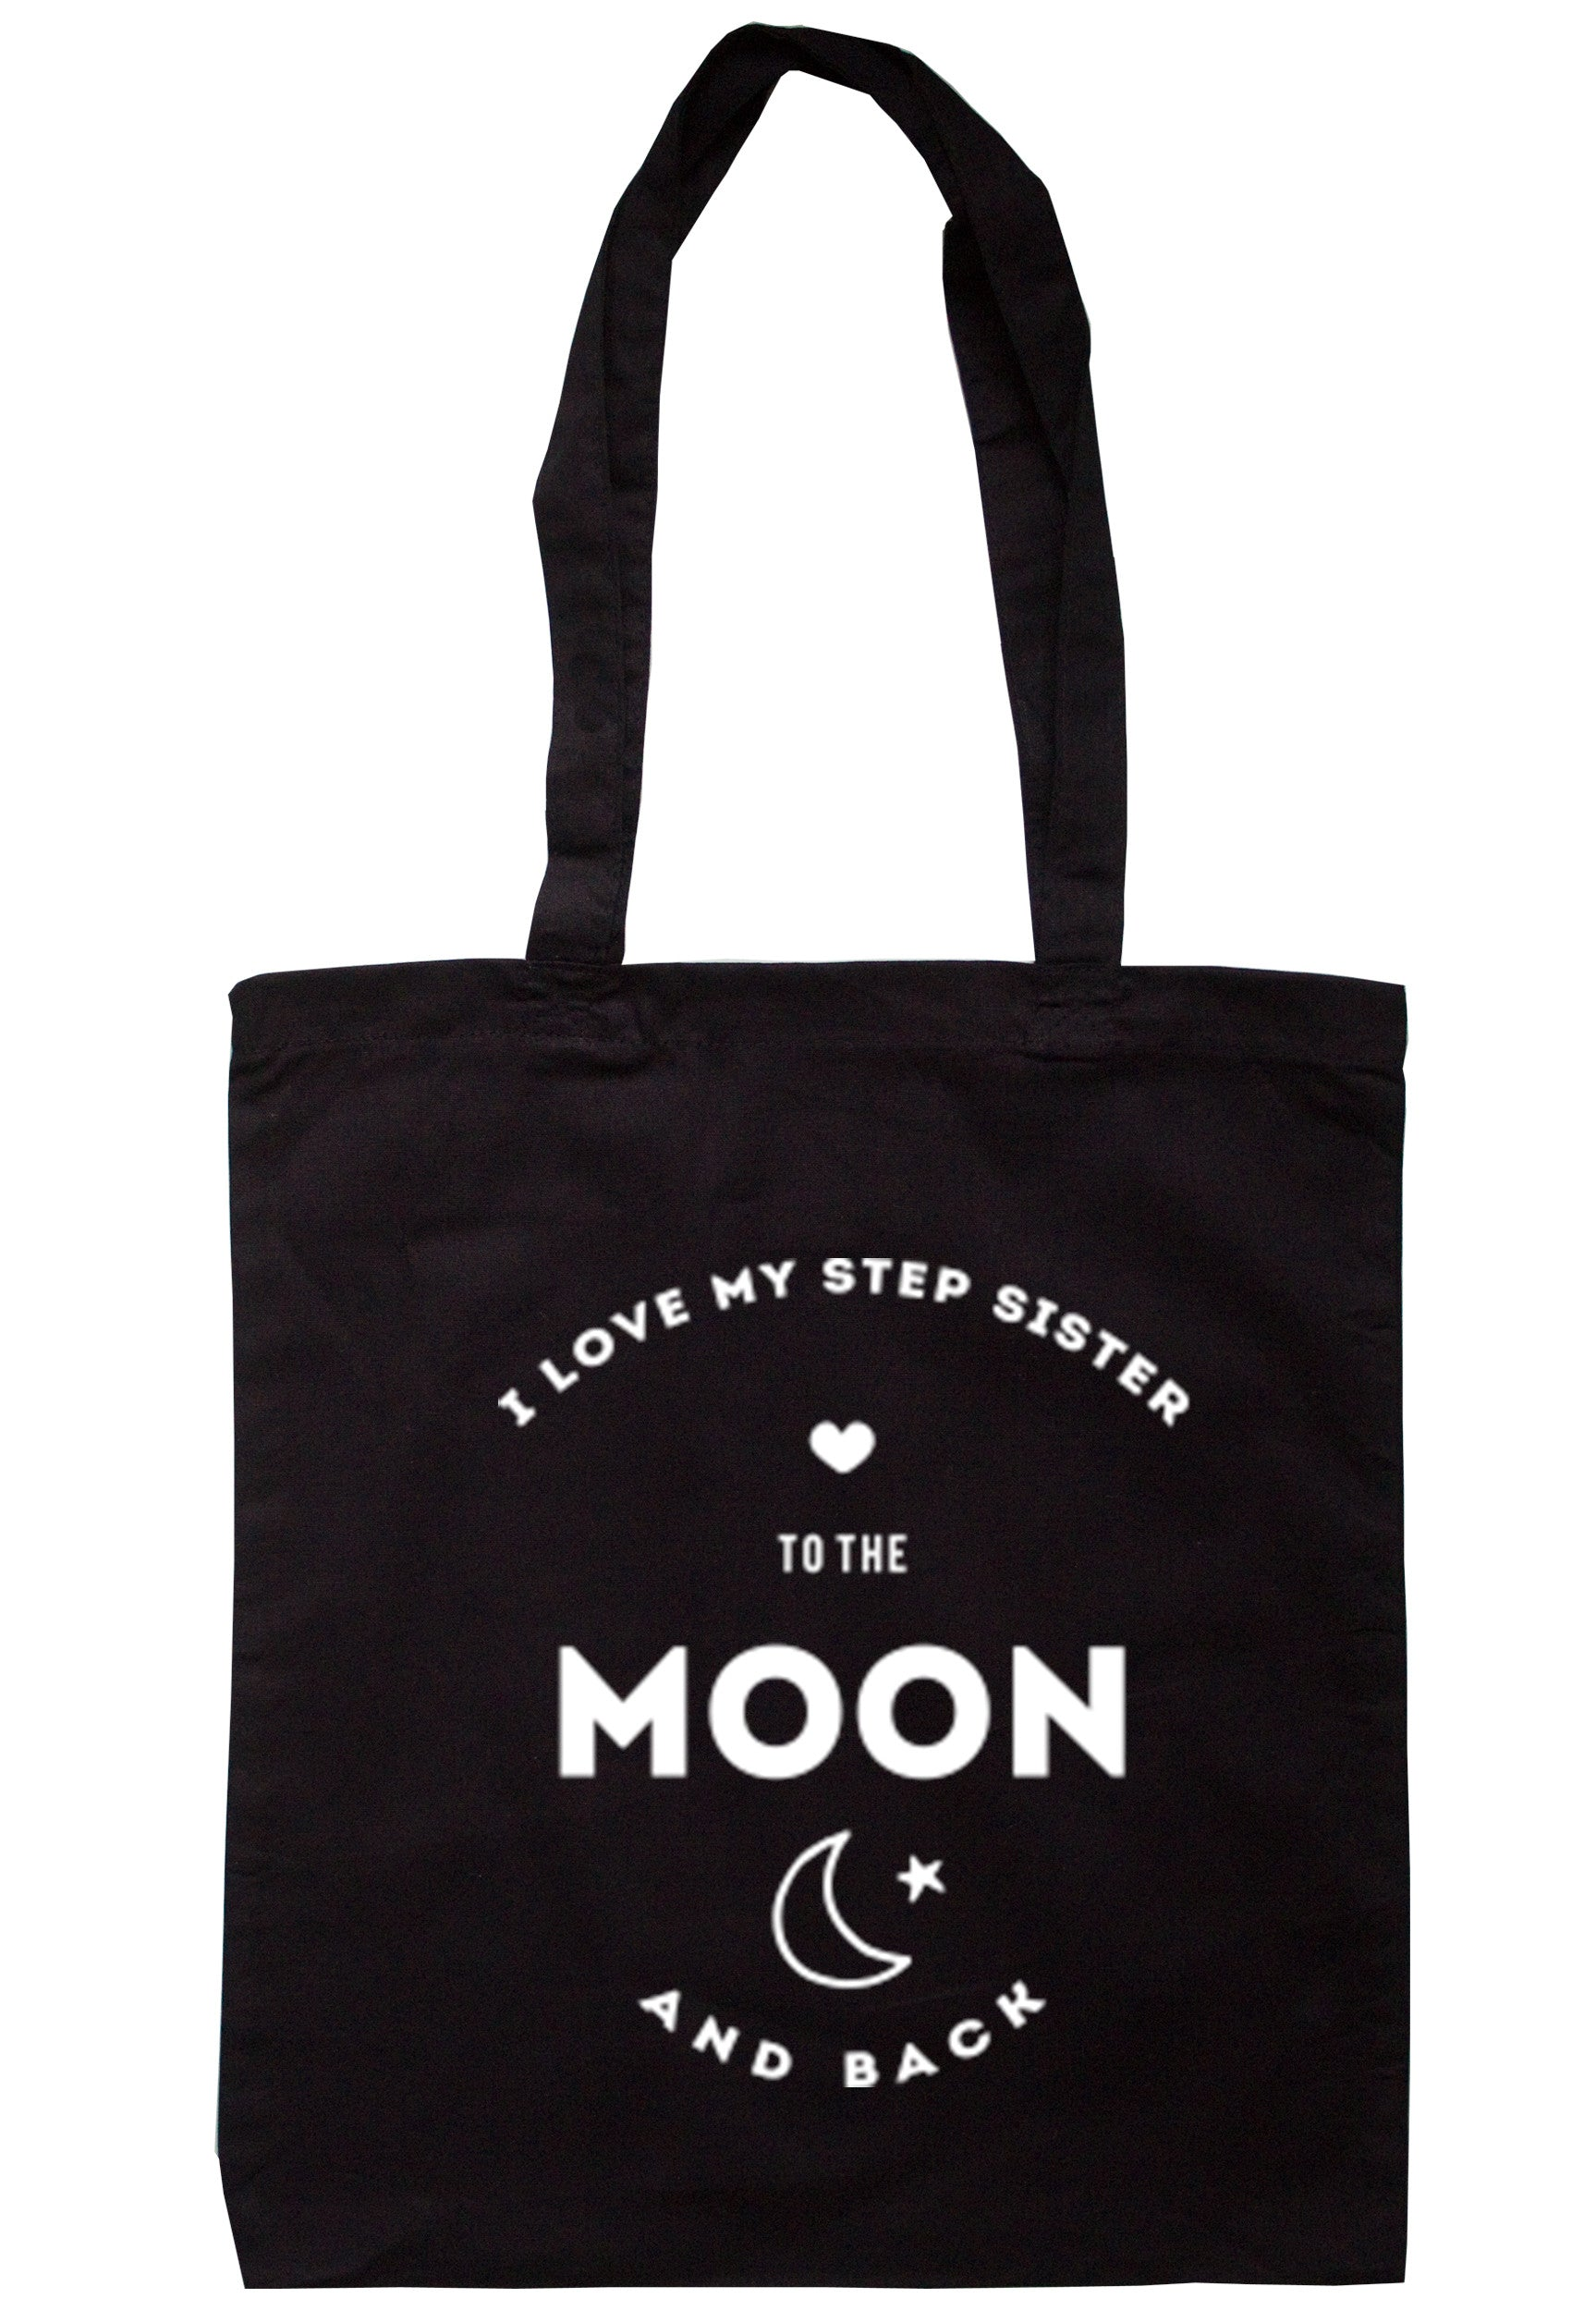 I Love My Step Sister To The Moon And Back Tote Bag TB0198 - Illustrated Identity Ltd.